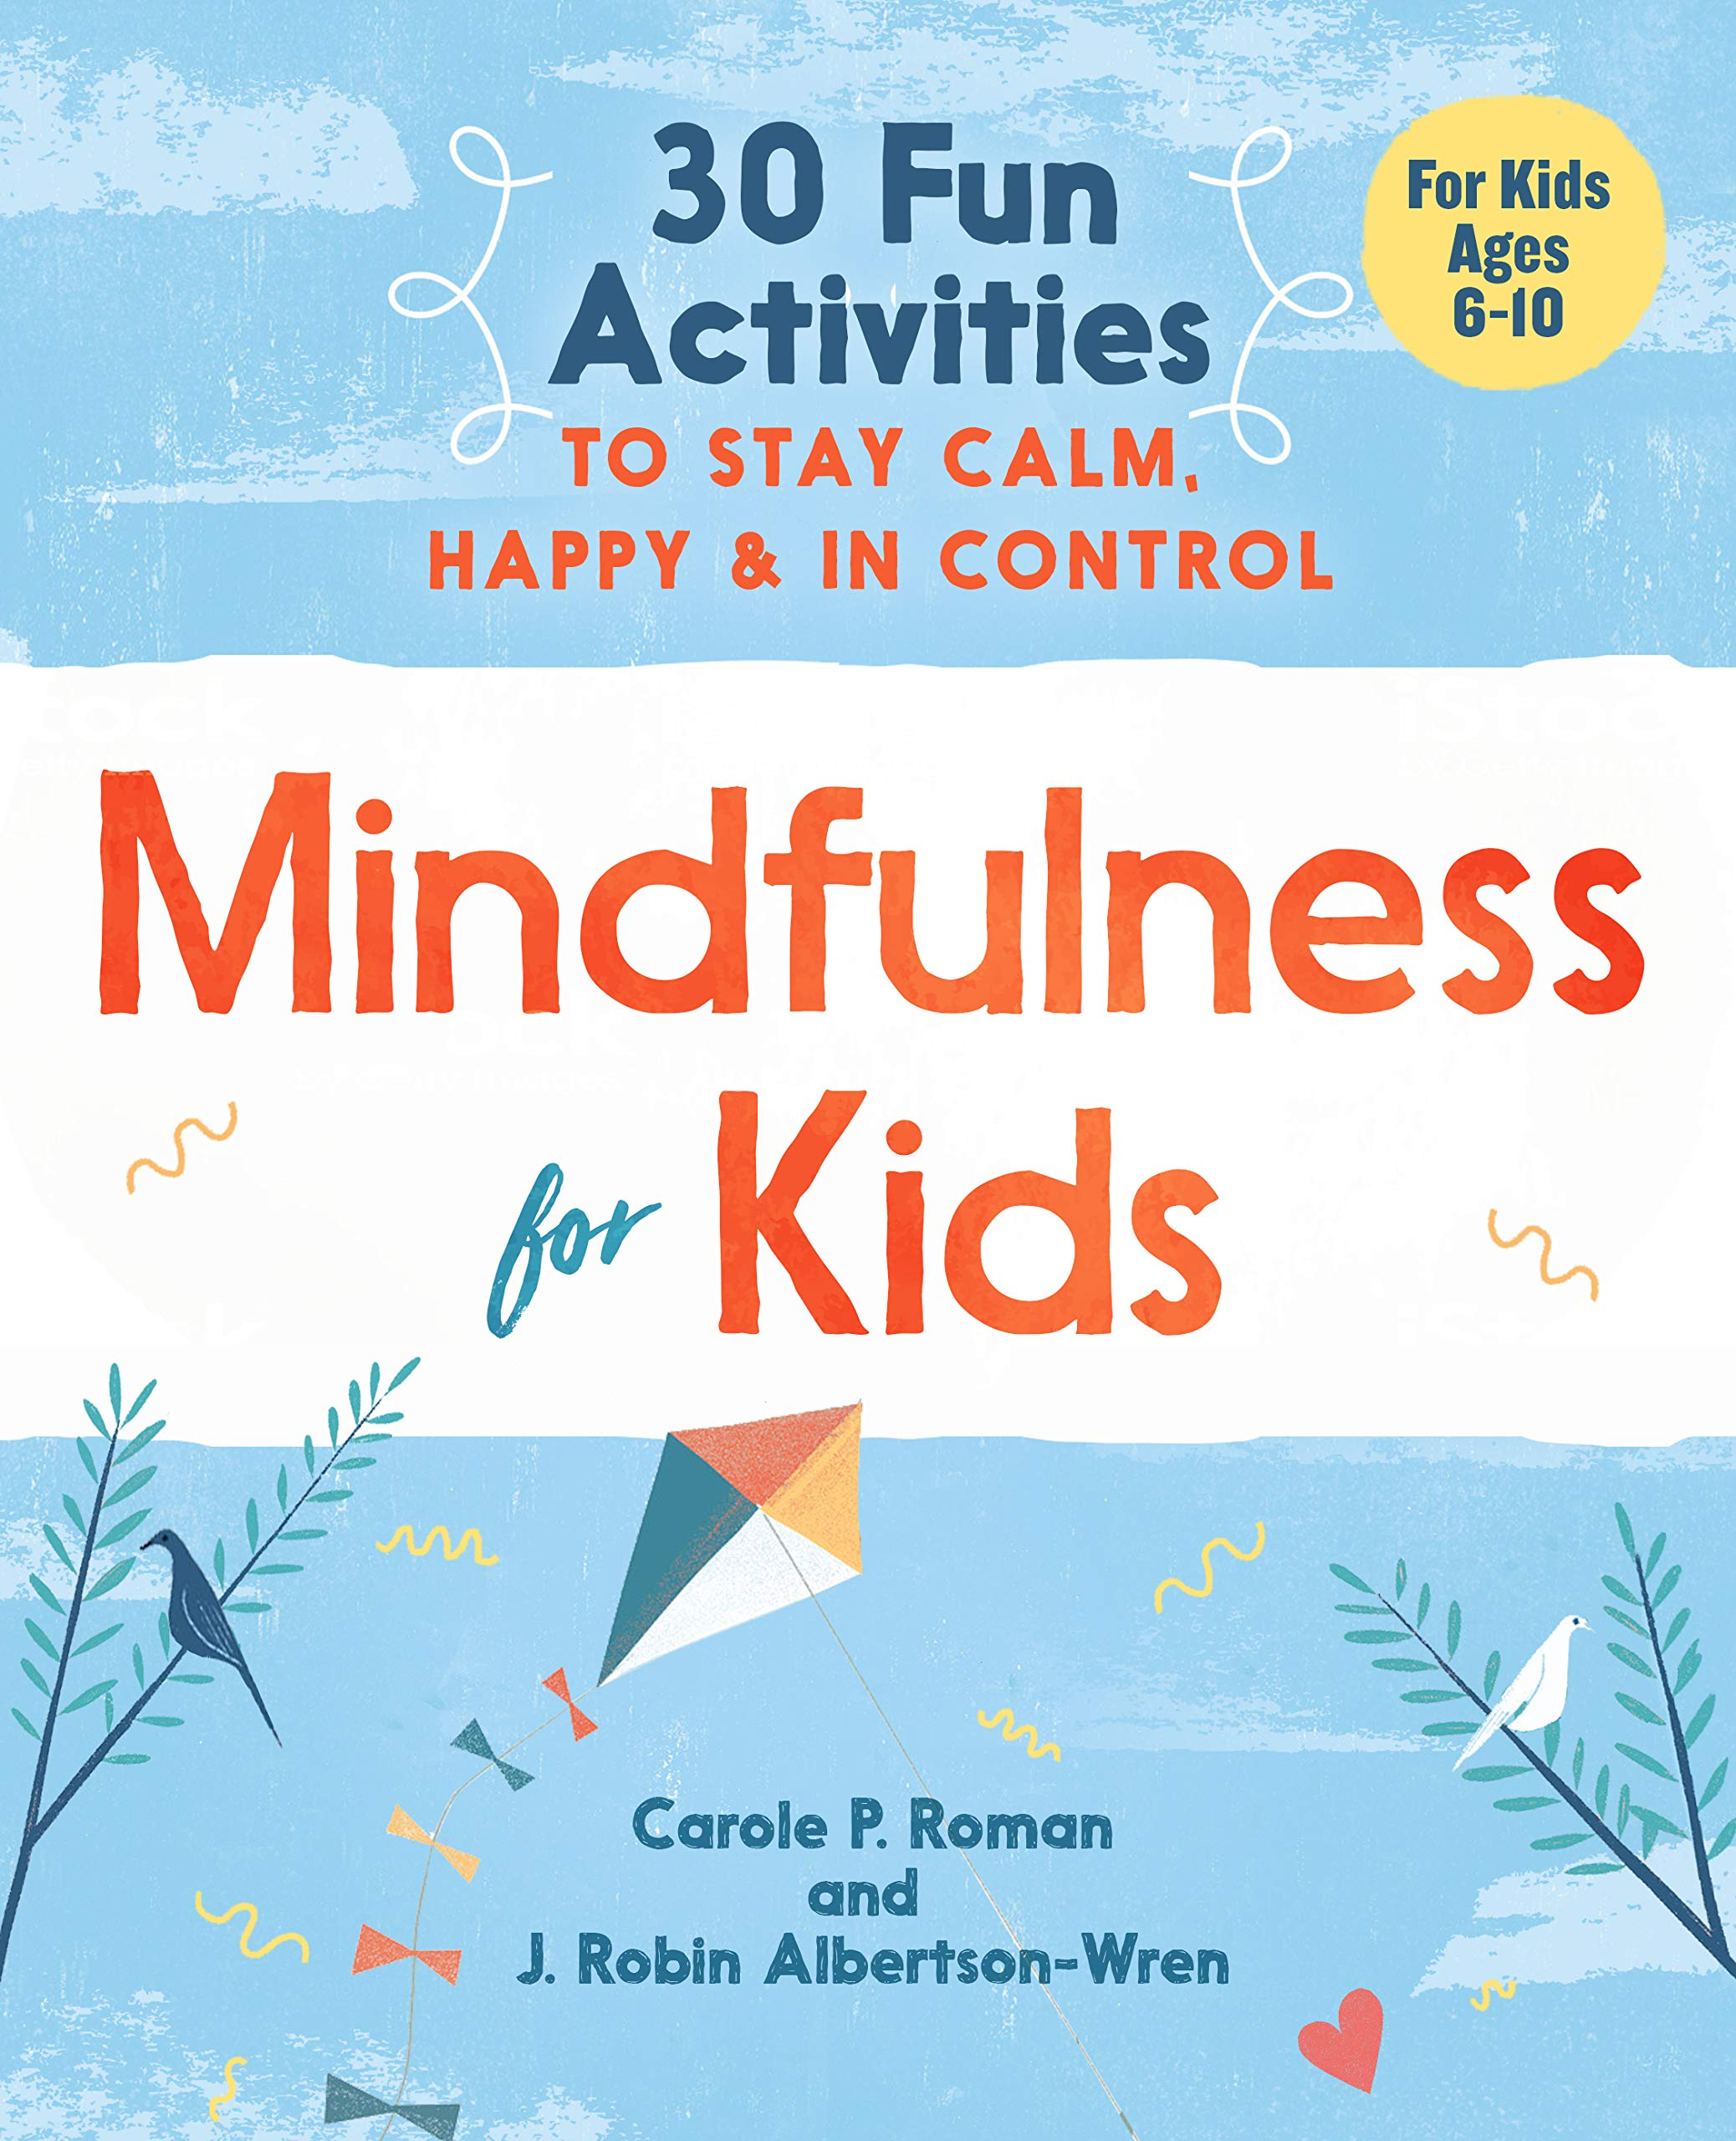 Mindfulness for Kids: 30 Fun Activities to Stay Calm, Happy